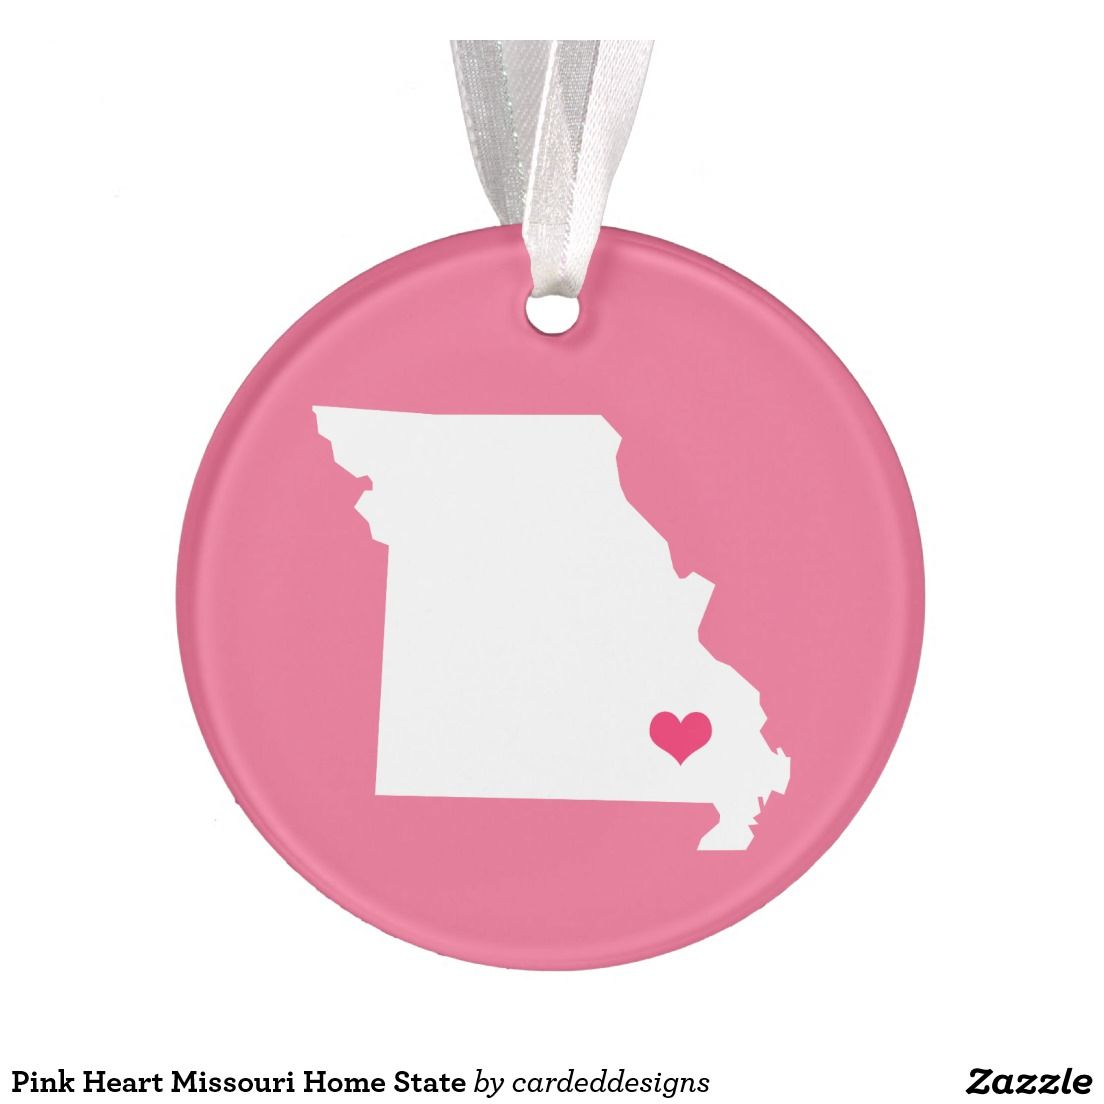 Pink Heart Missouri Home State